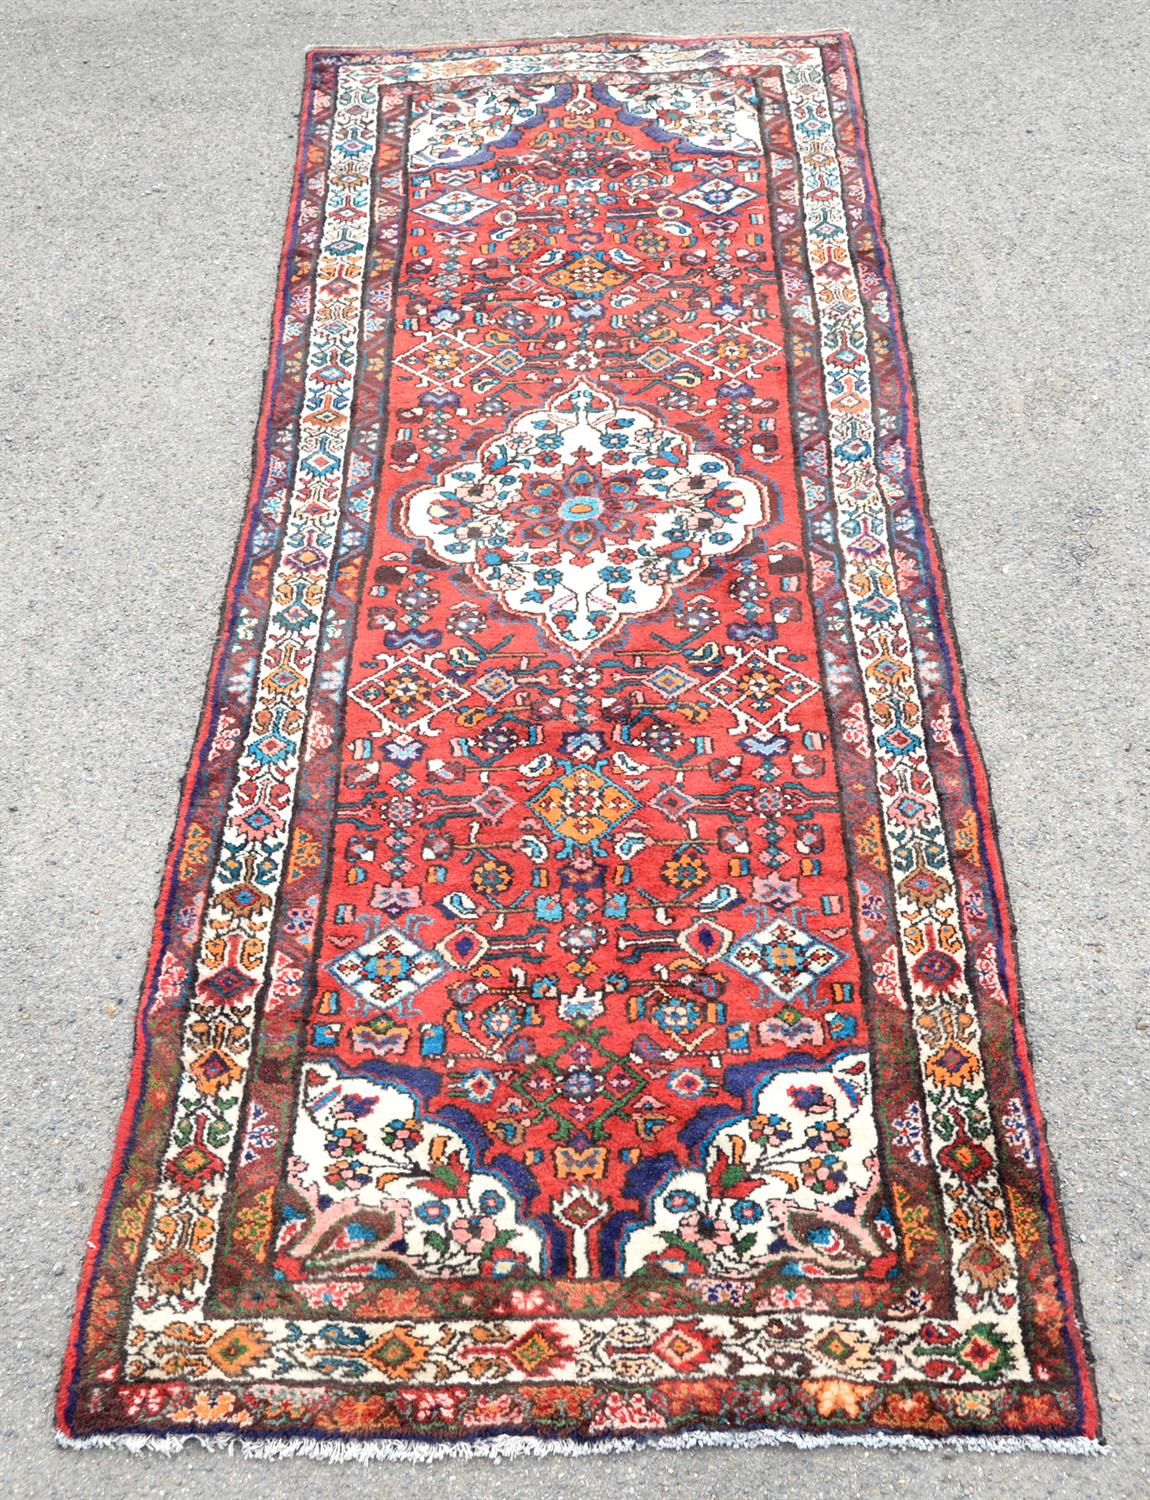 Persian village runner with floral medallion and floral motifs on a red ground, within floral